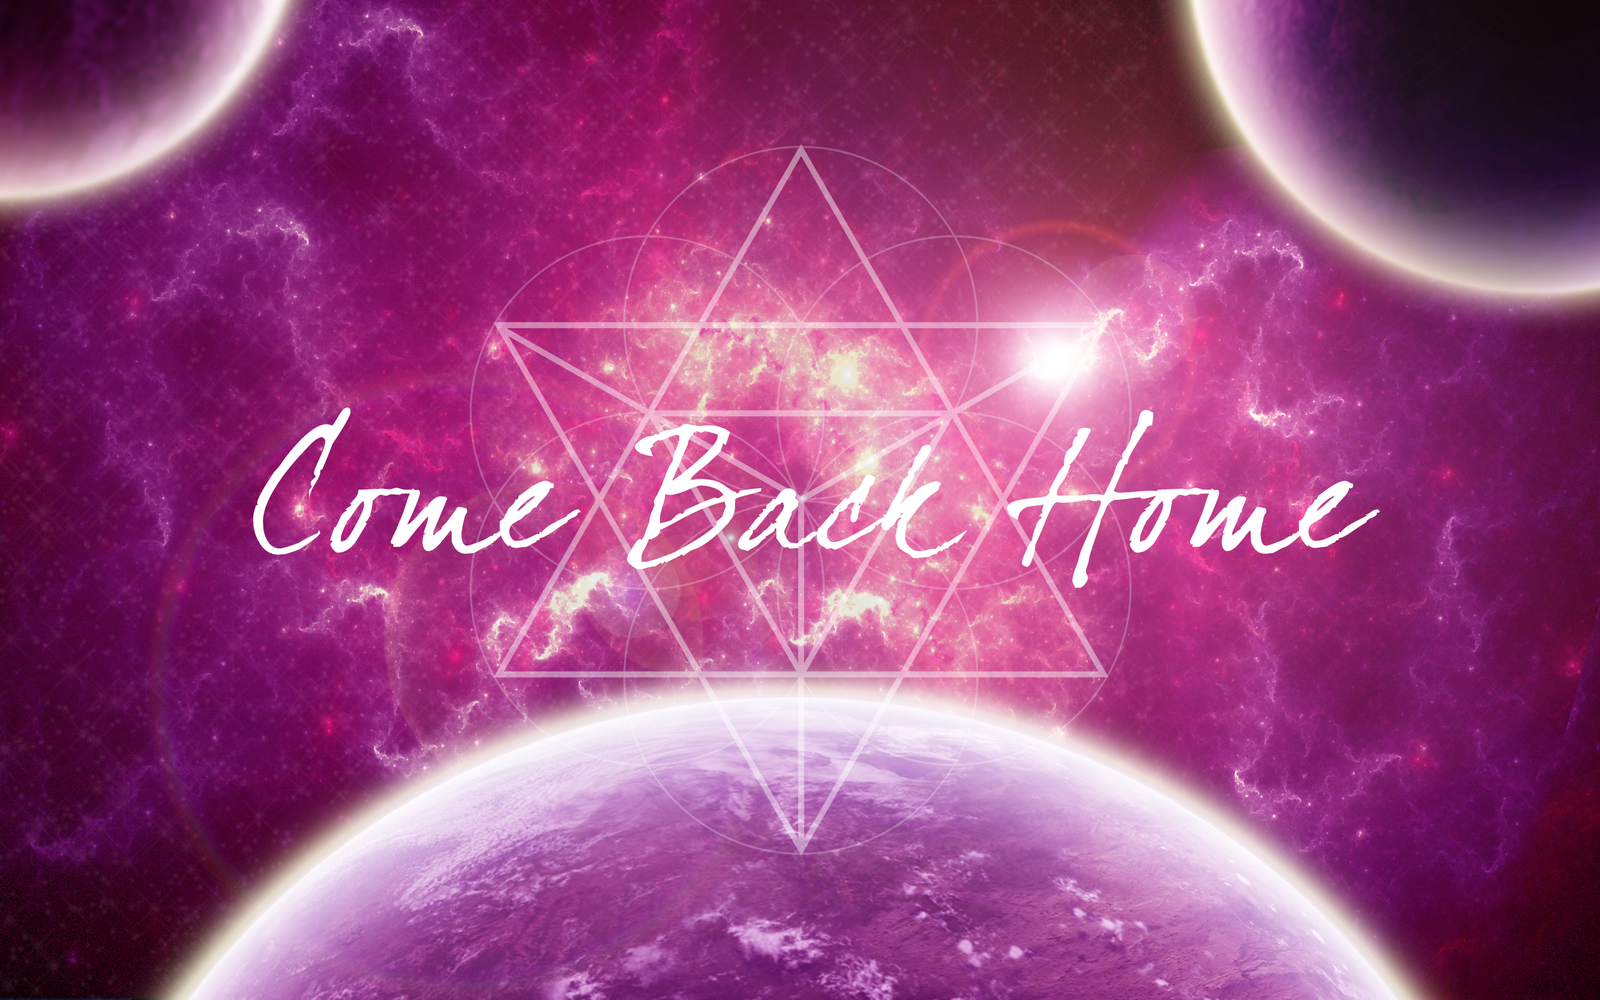 2ne1 39 come back home 39 inspired background image by - 2ne1 come back home wallpaper ...